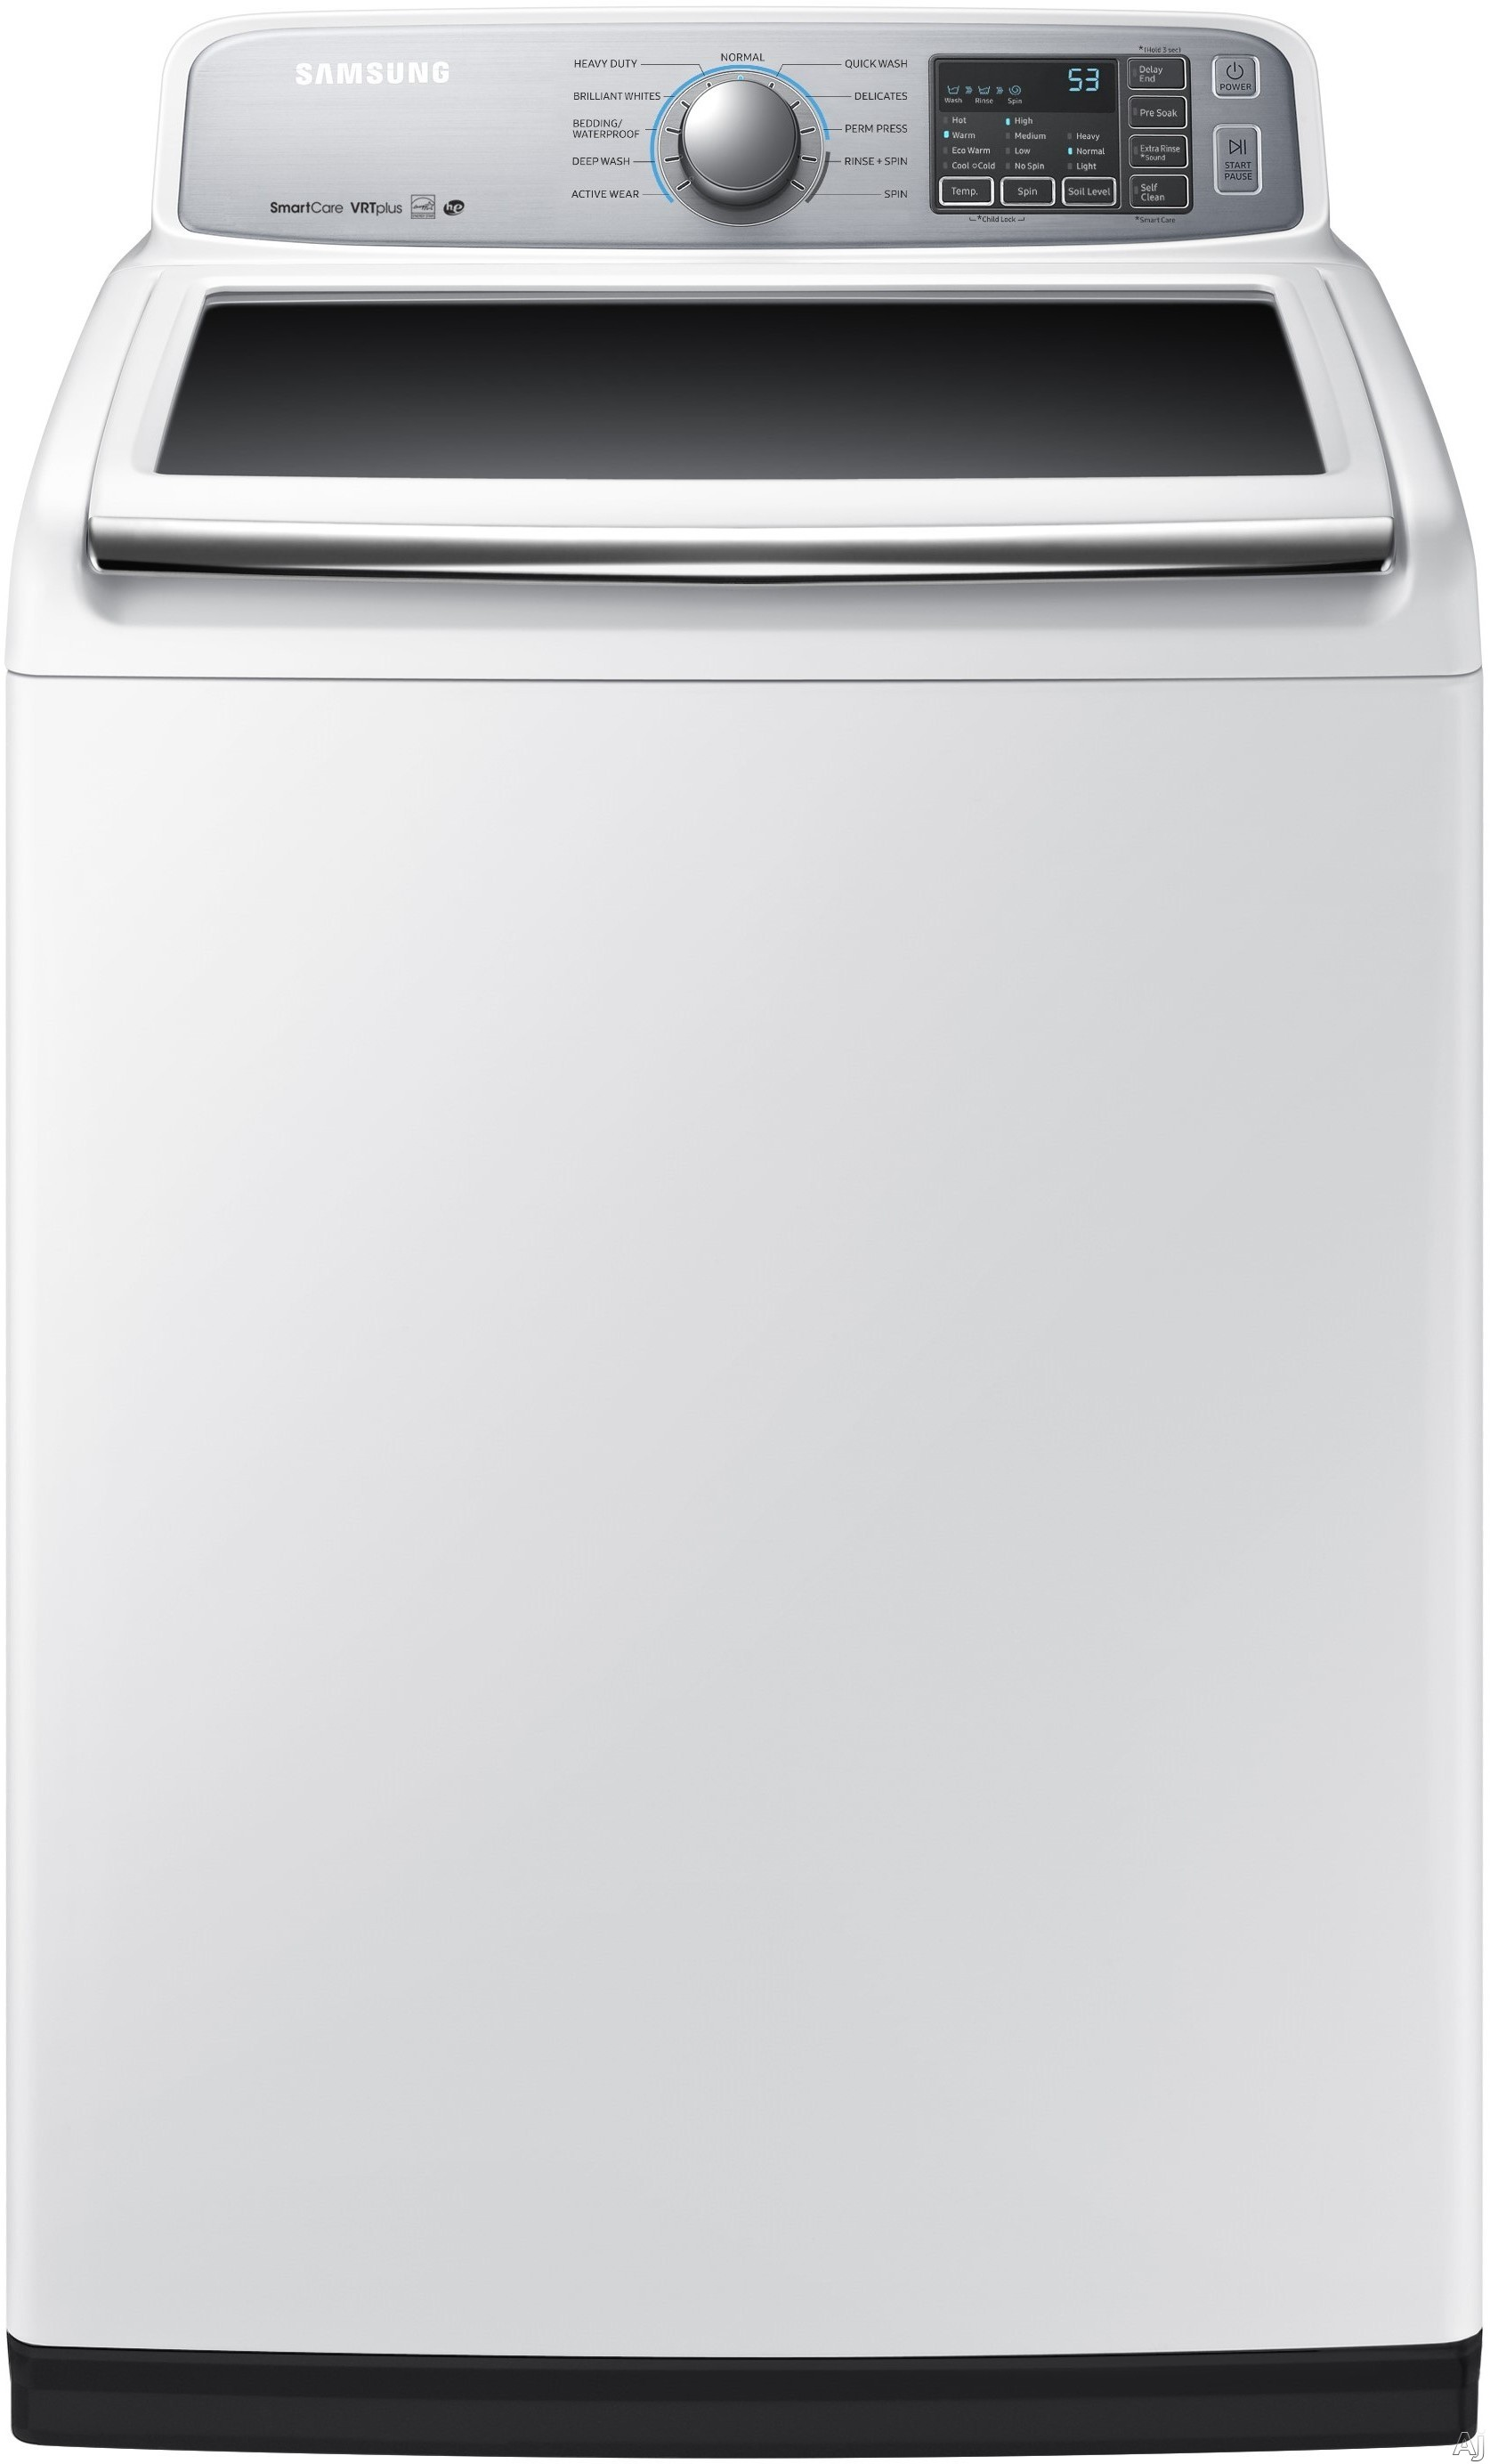 "White Top Load Laundry Pair with WA50M7450AW 27"""" Washer (5.0 cu. ft. Capacity) and DVE50M7450W 27"""" Electric Dryer (7.4 cu. ft."" 794101"